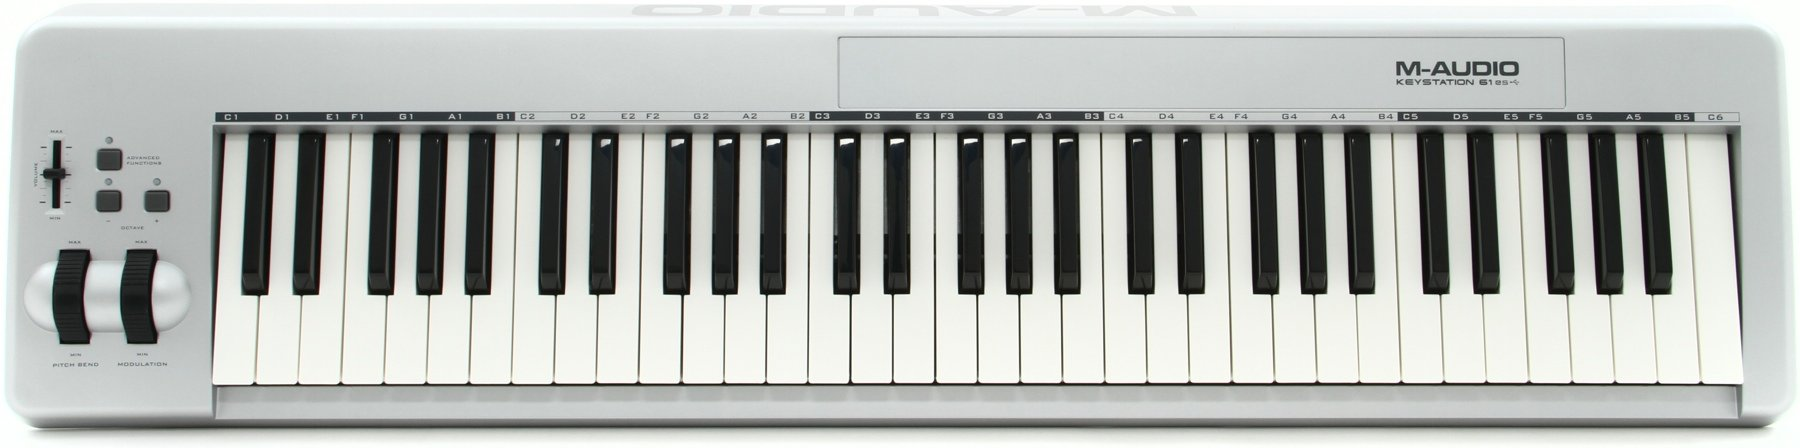 M-AUDIO KEYSTATION 61ES TREIBER WINDOWS 7